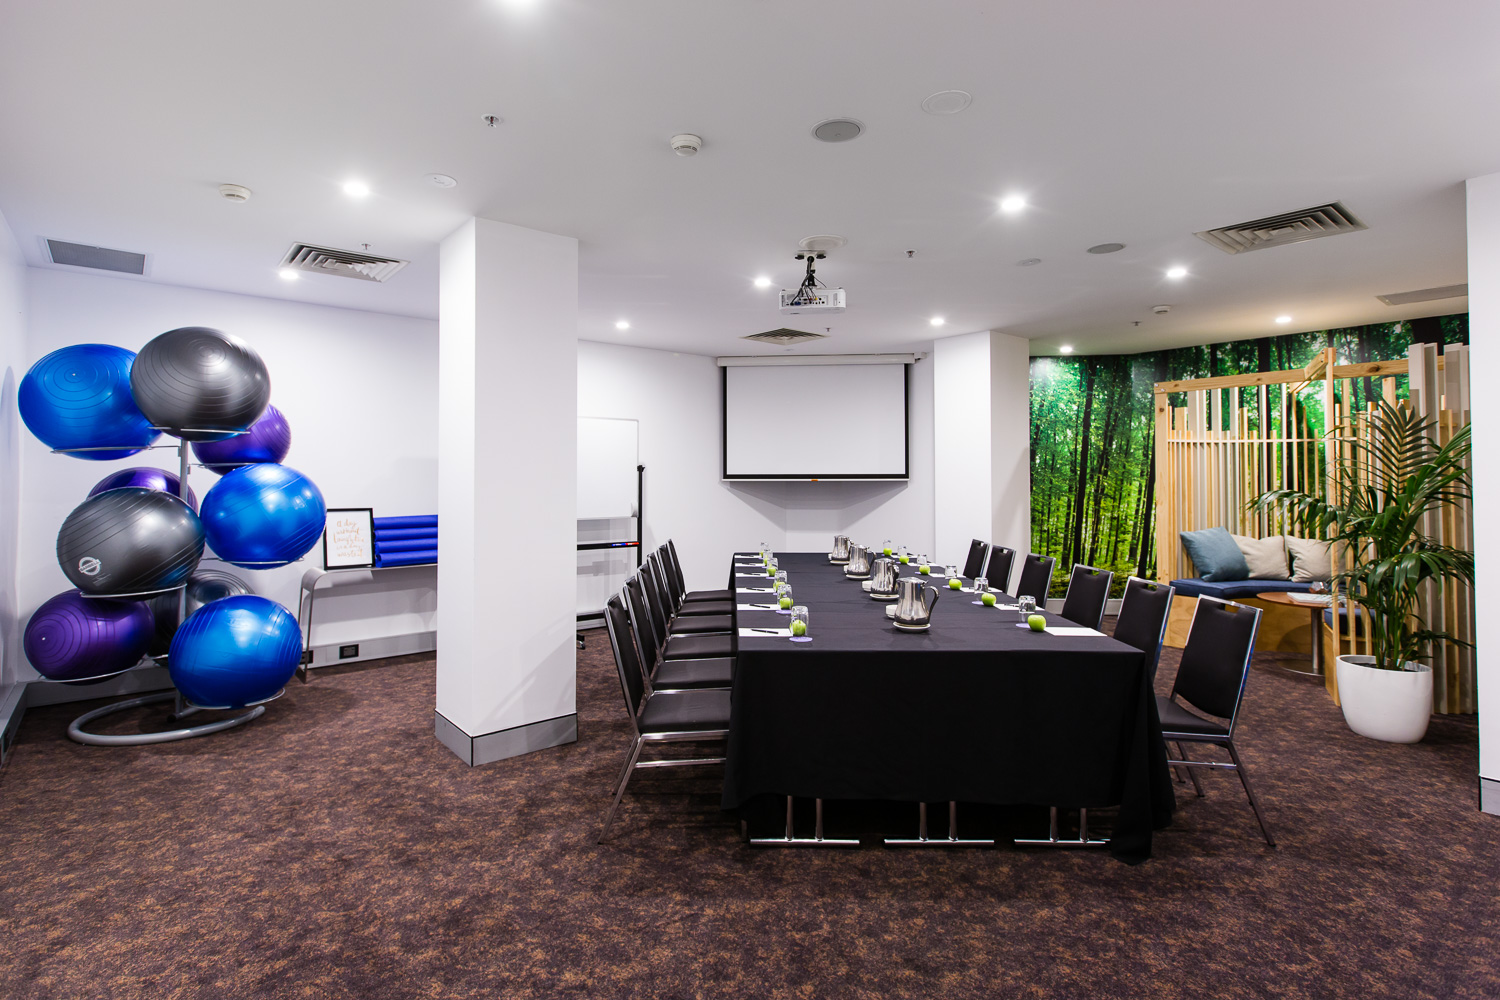 Rooms: The Trend For Healthy Corporate Events